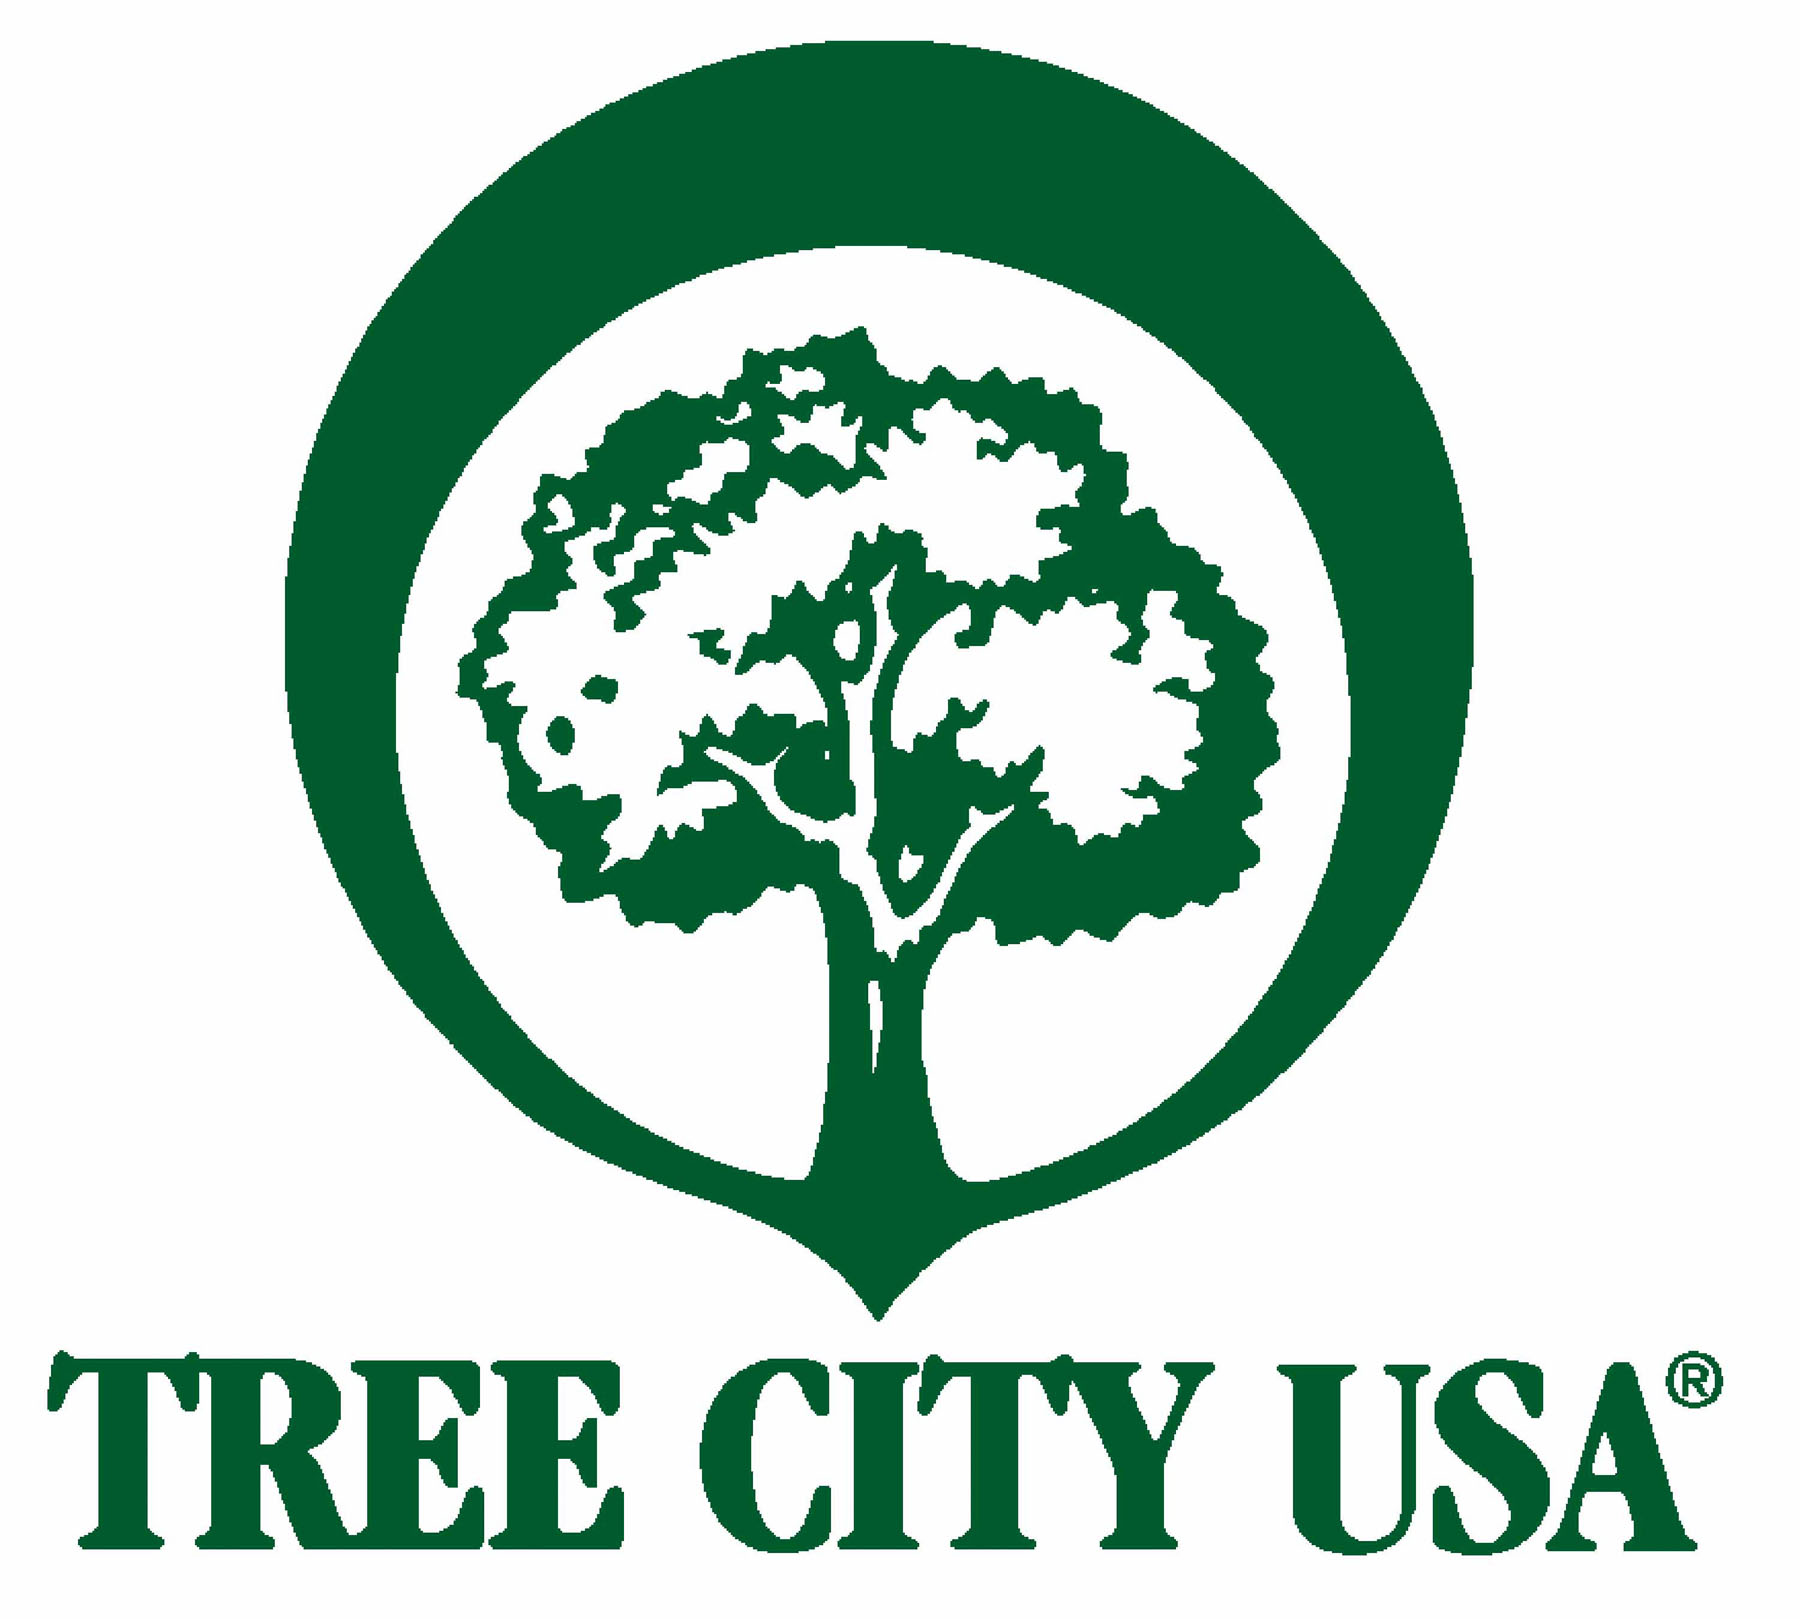 Tree City USA logo.jpg